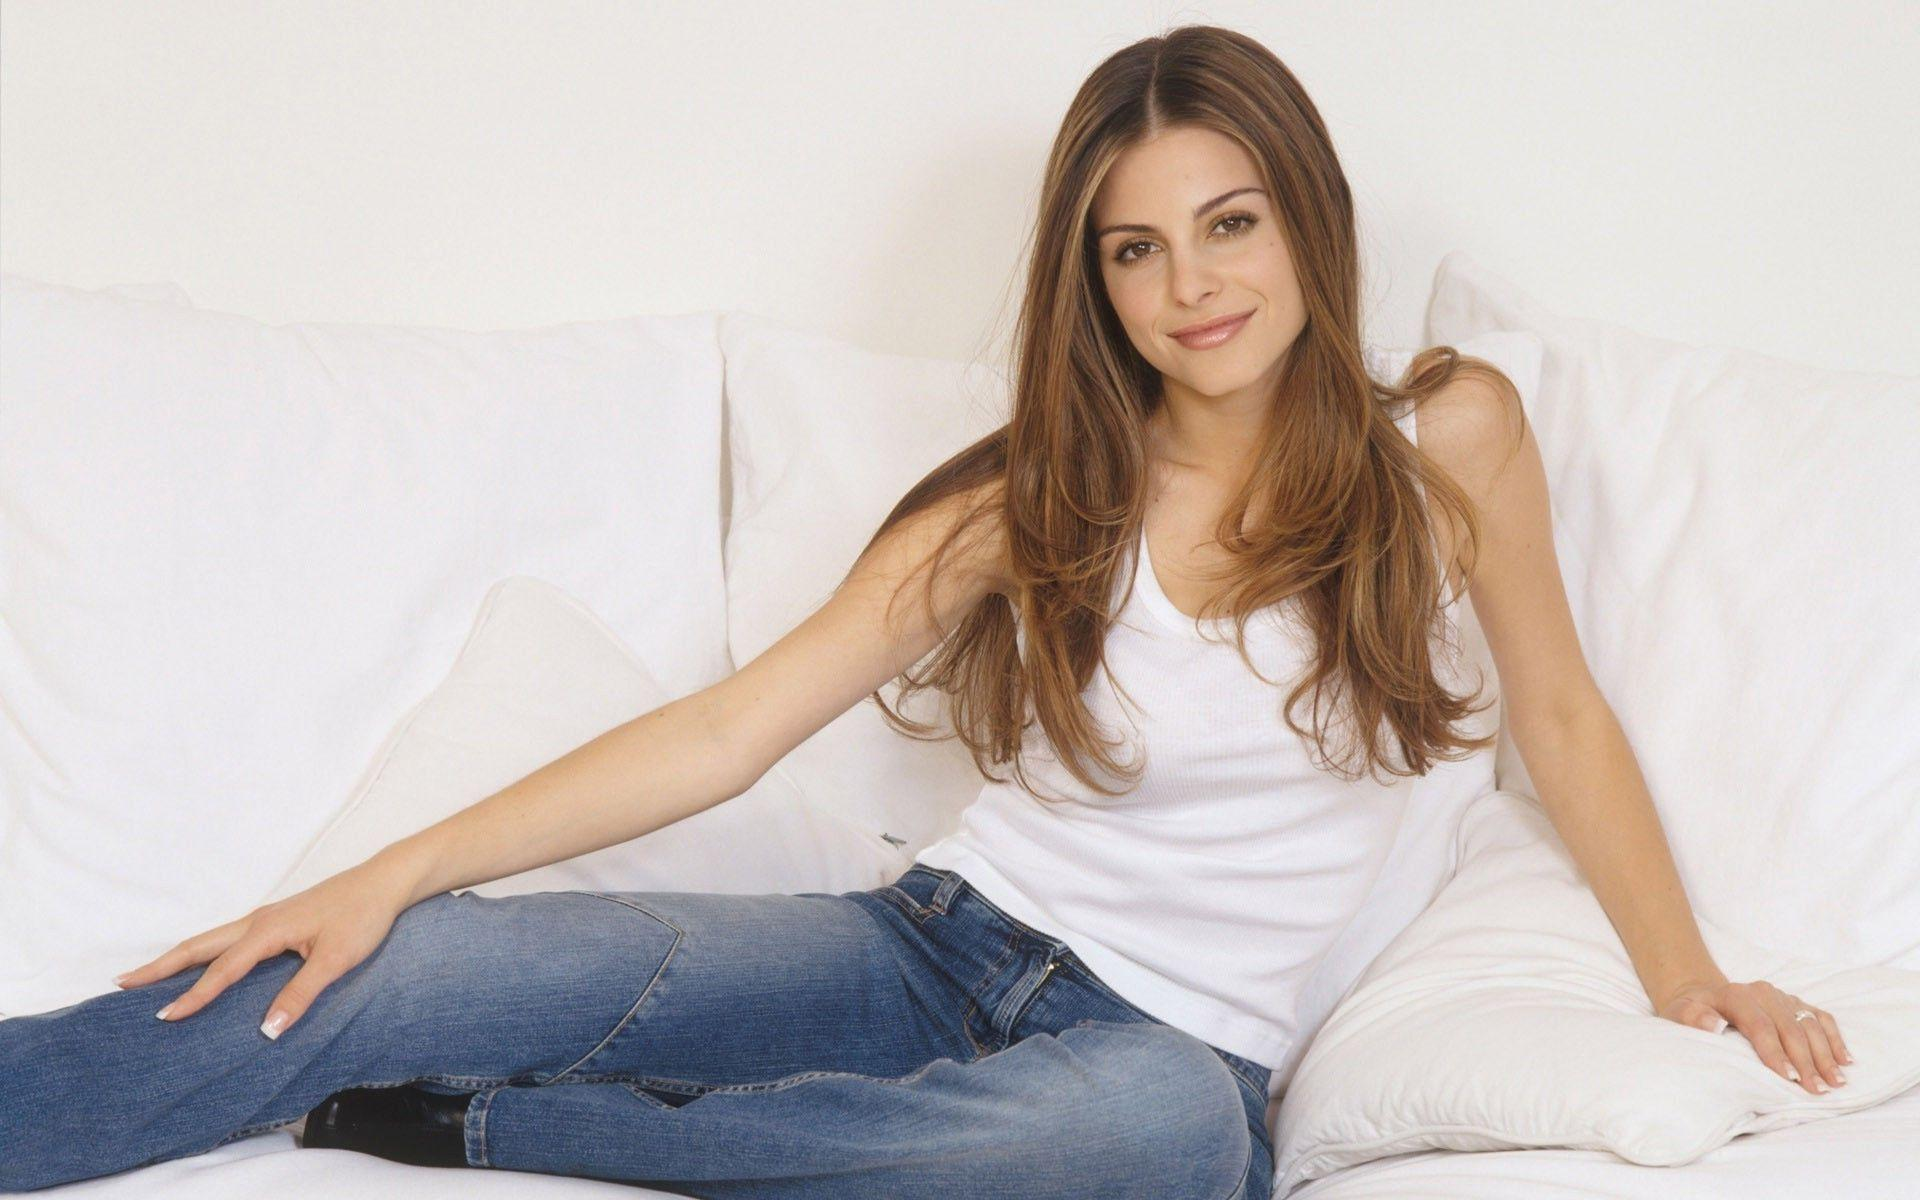 women, Maria Menounos Wallpapers HD / Desktop and Mobile Backgrounds